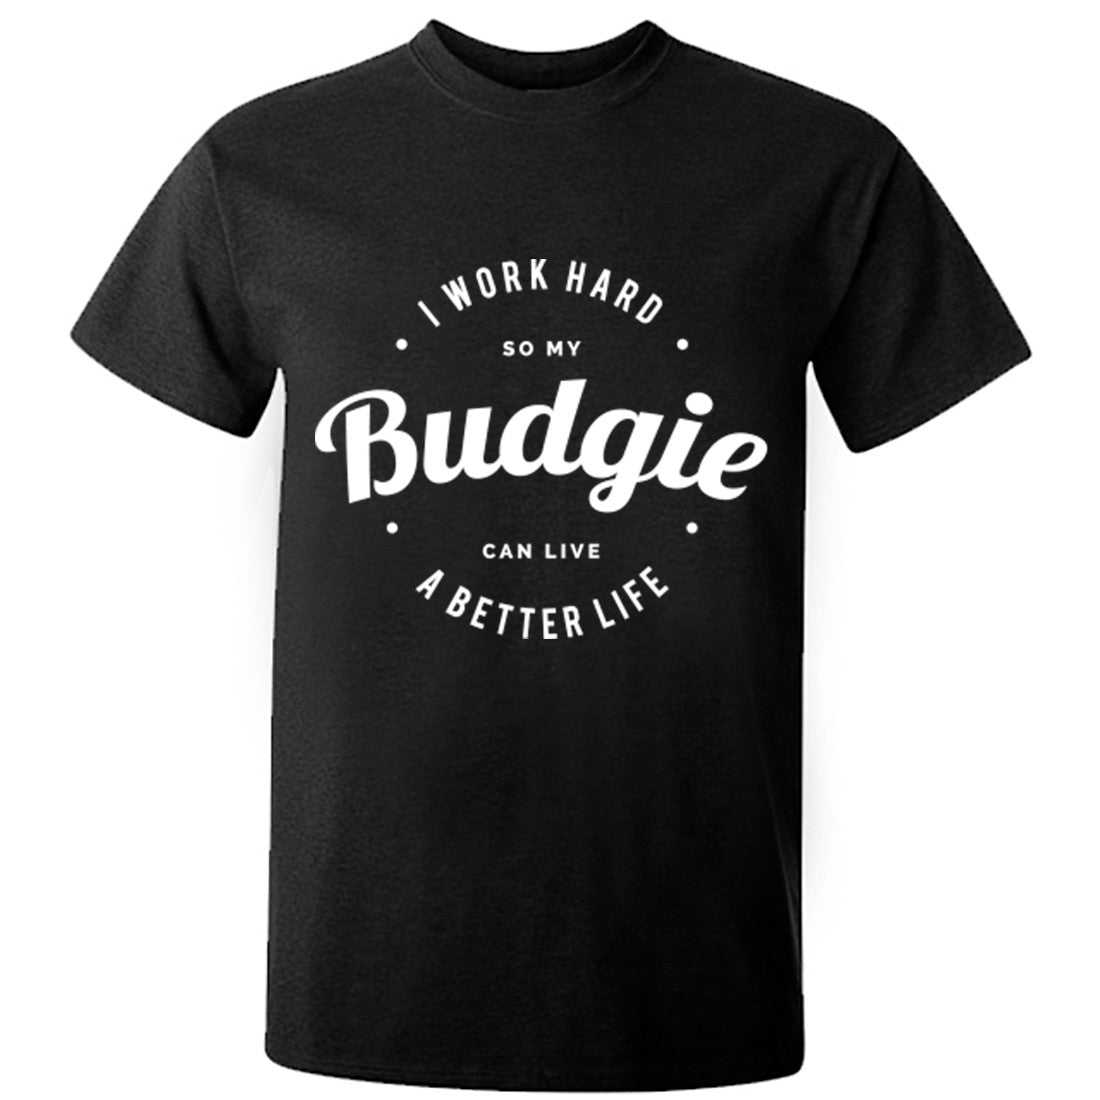 I Work Hard So My Budgie Can Live A Better Life Unisex Fit T-Shirt K0439 - Illustrated Identity Ltd.